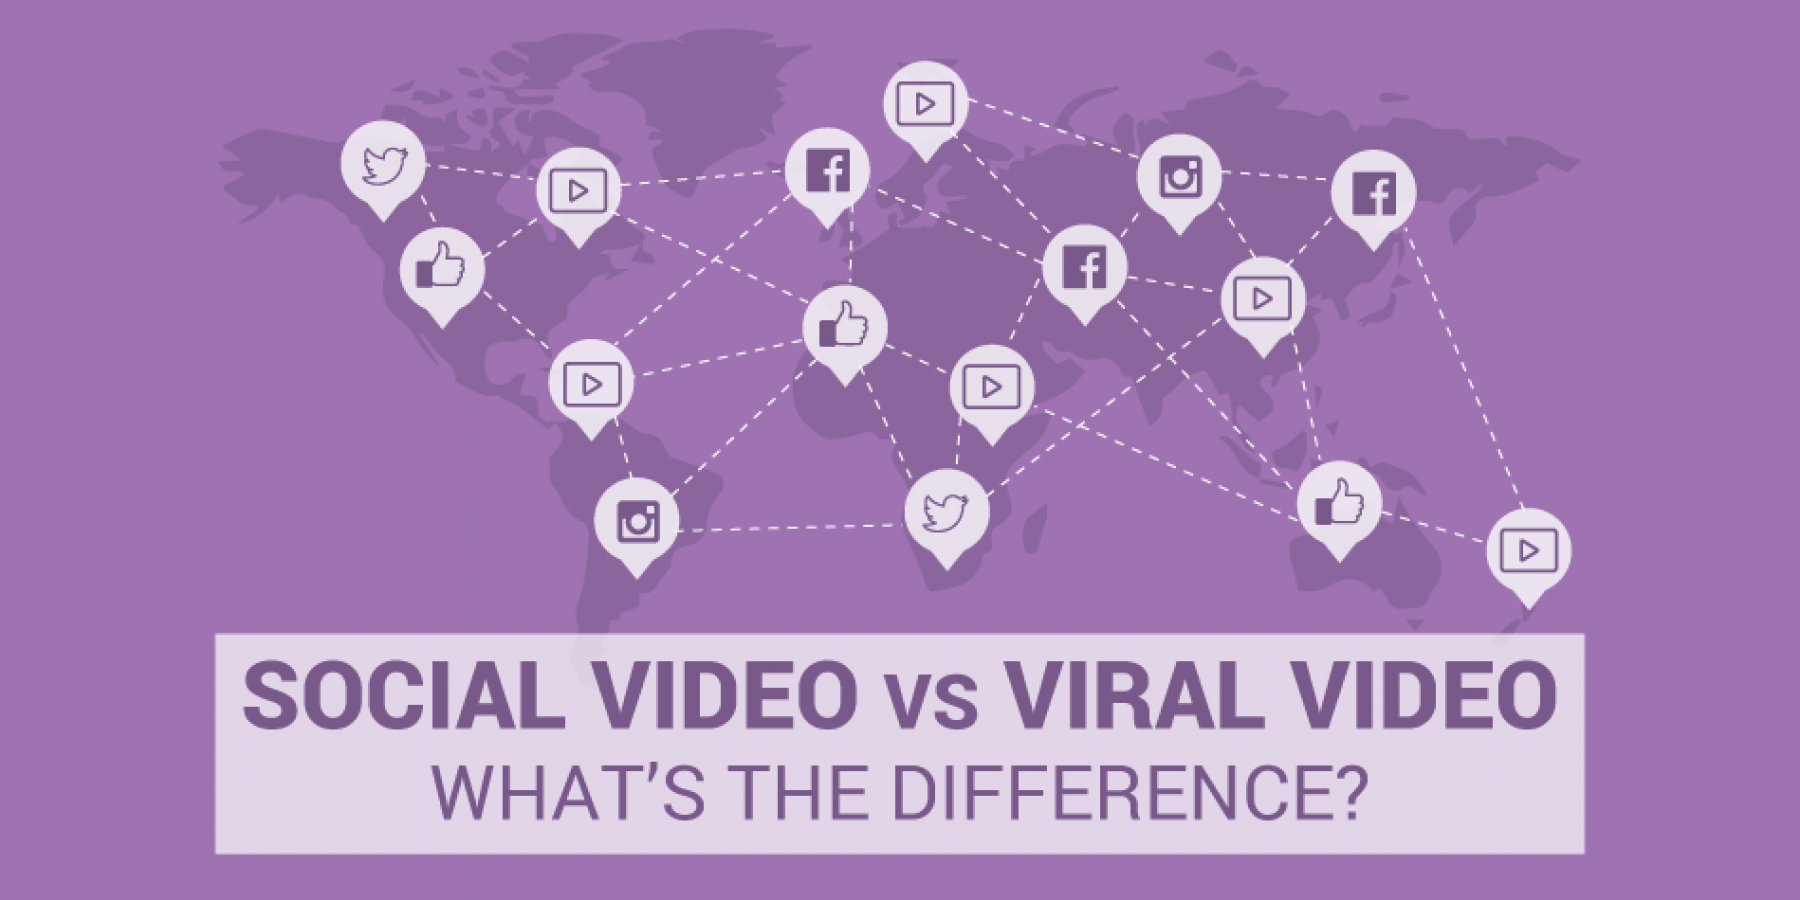 What's-the-difference-between-social-video-and-viral-video